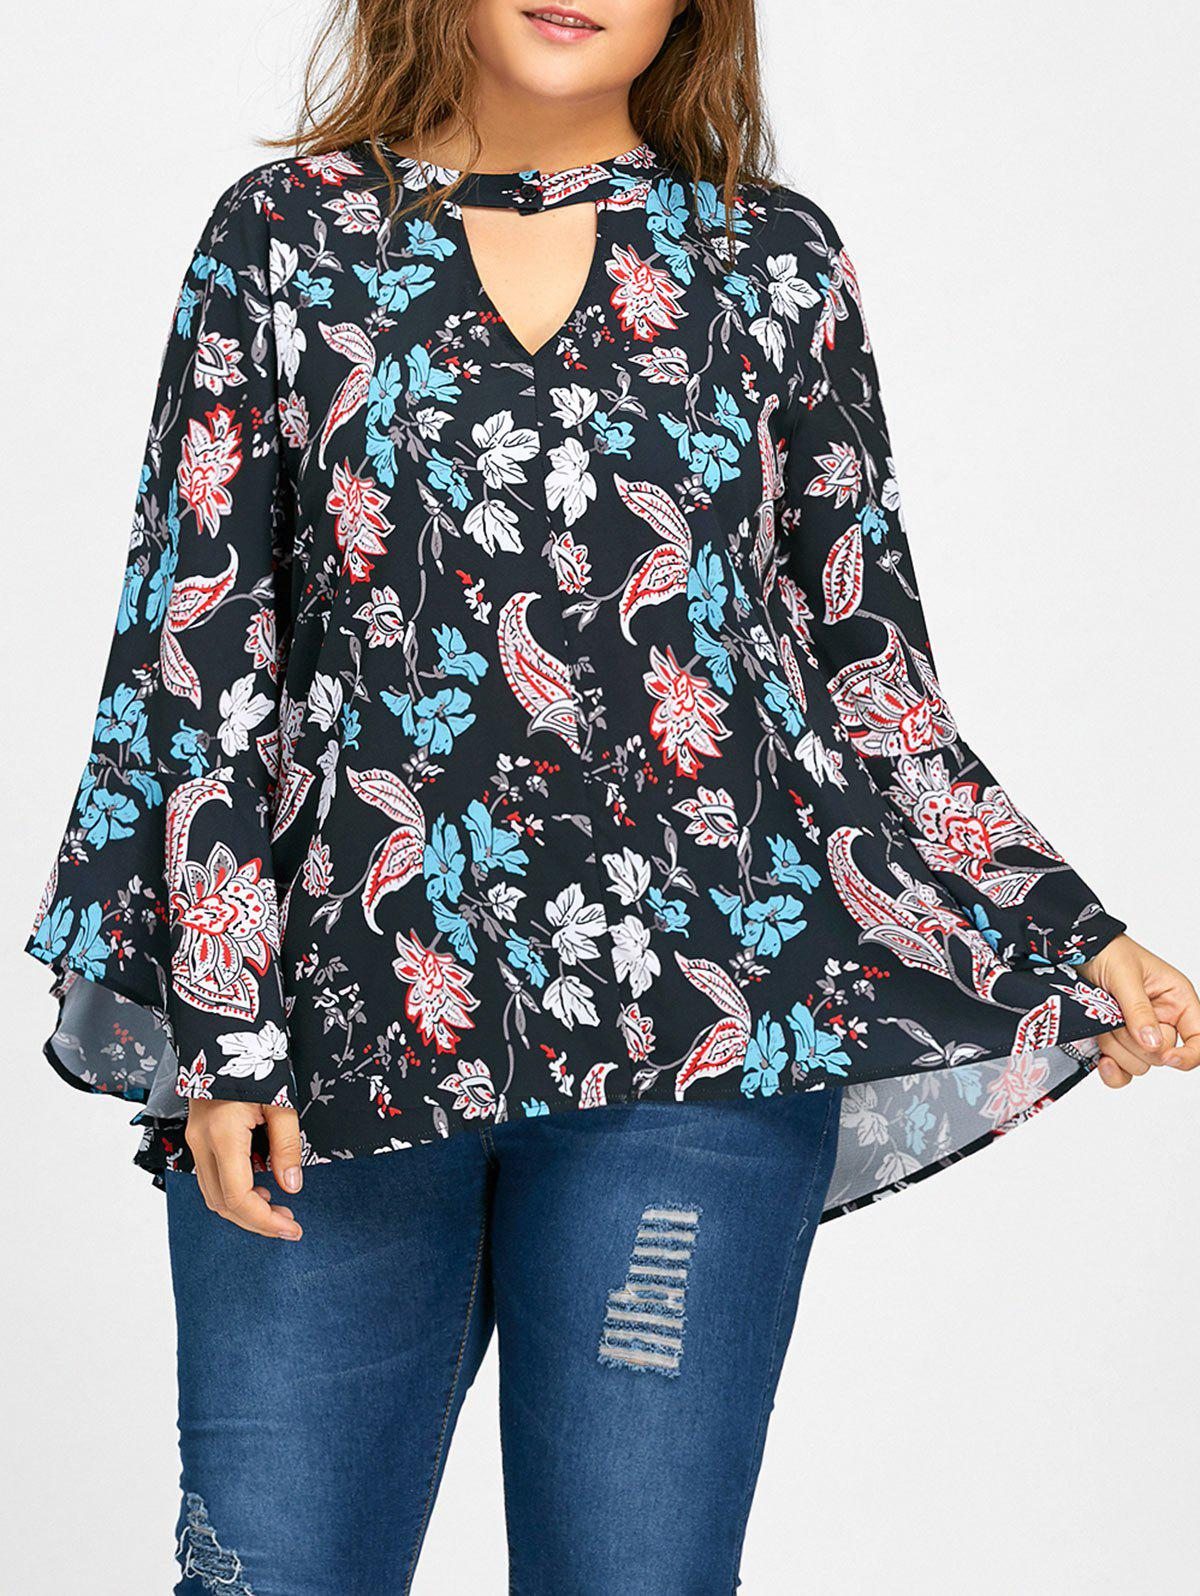 22465c1871b58 2019 Bell Sleeve Keyhole Floral Print Plus Size Blouse